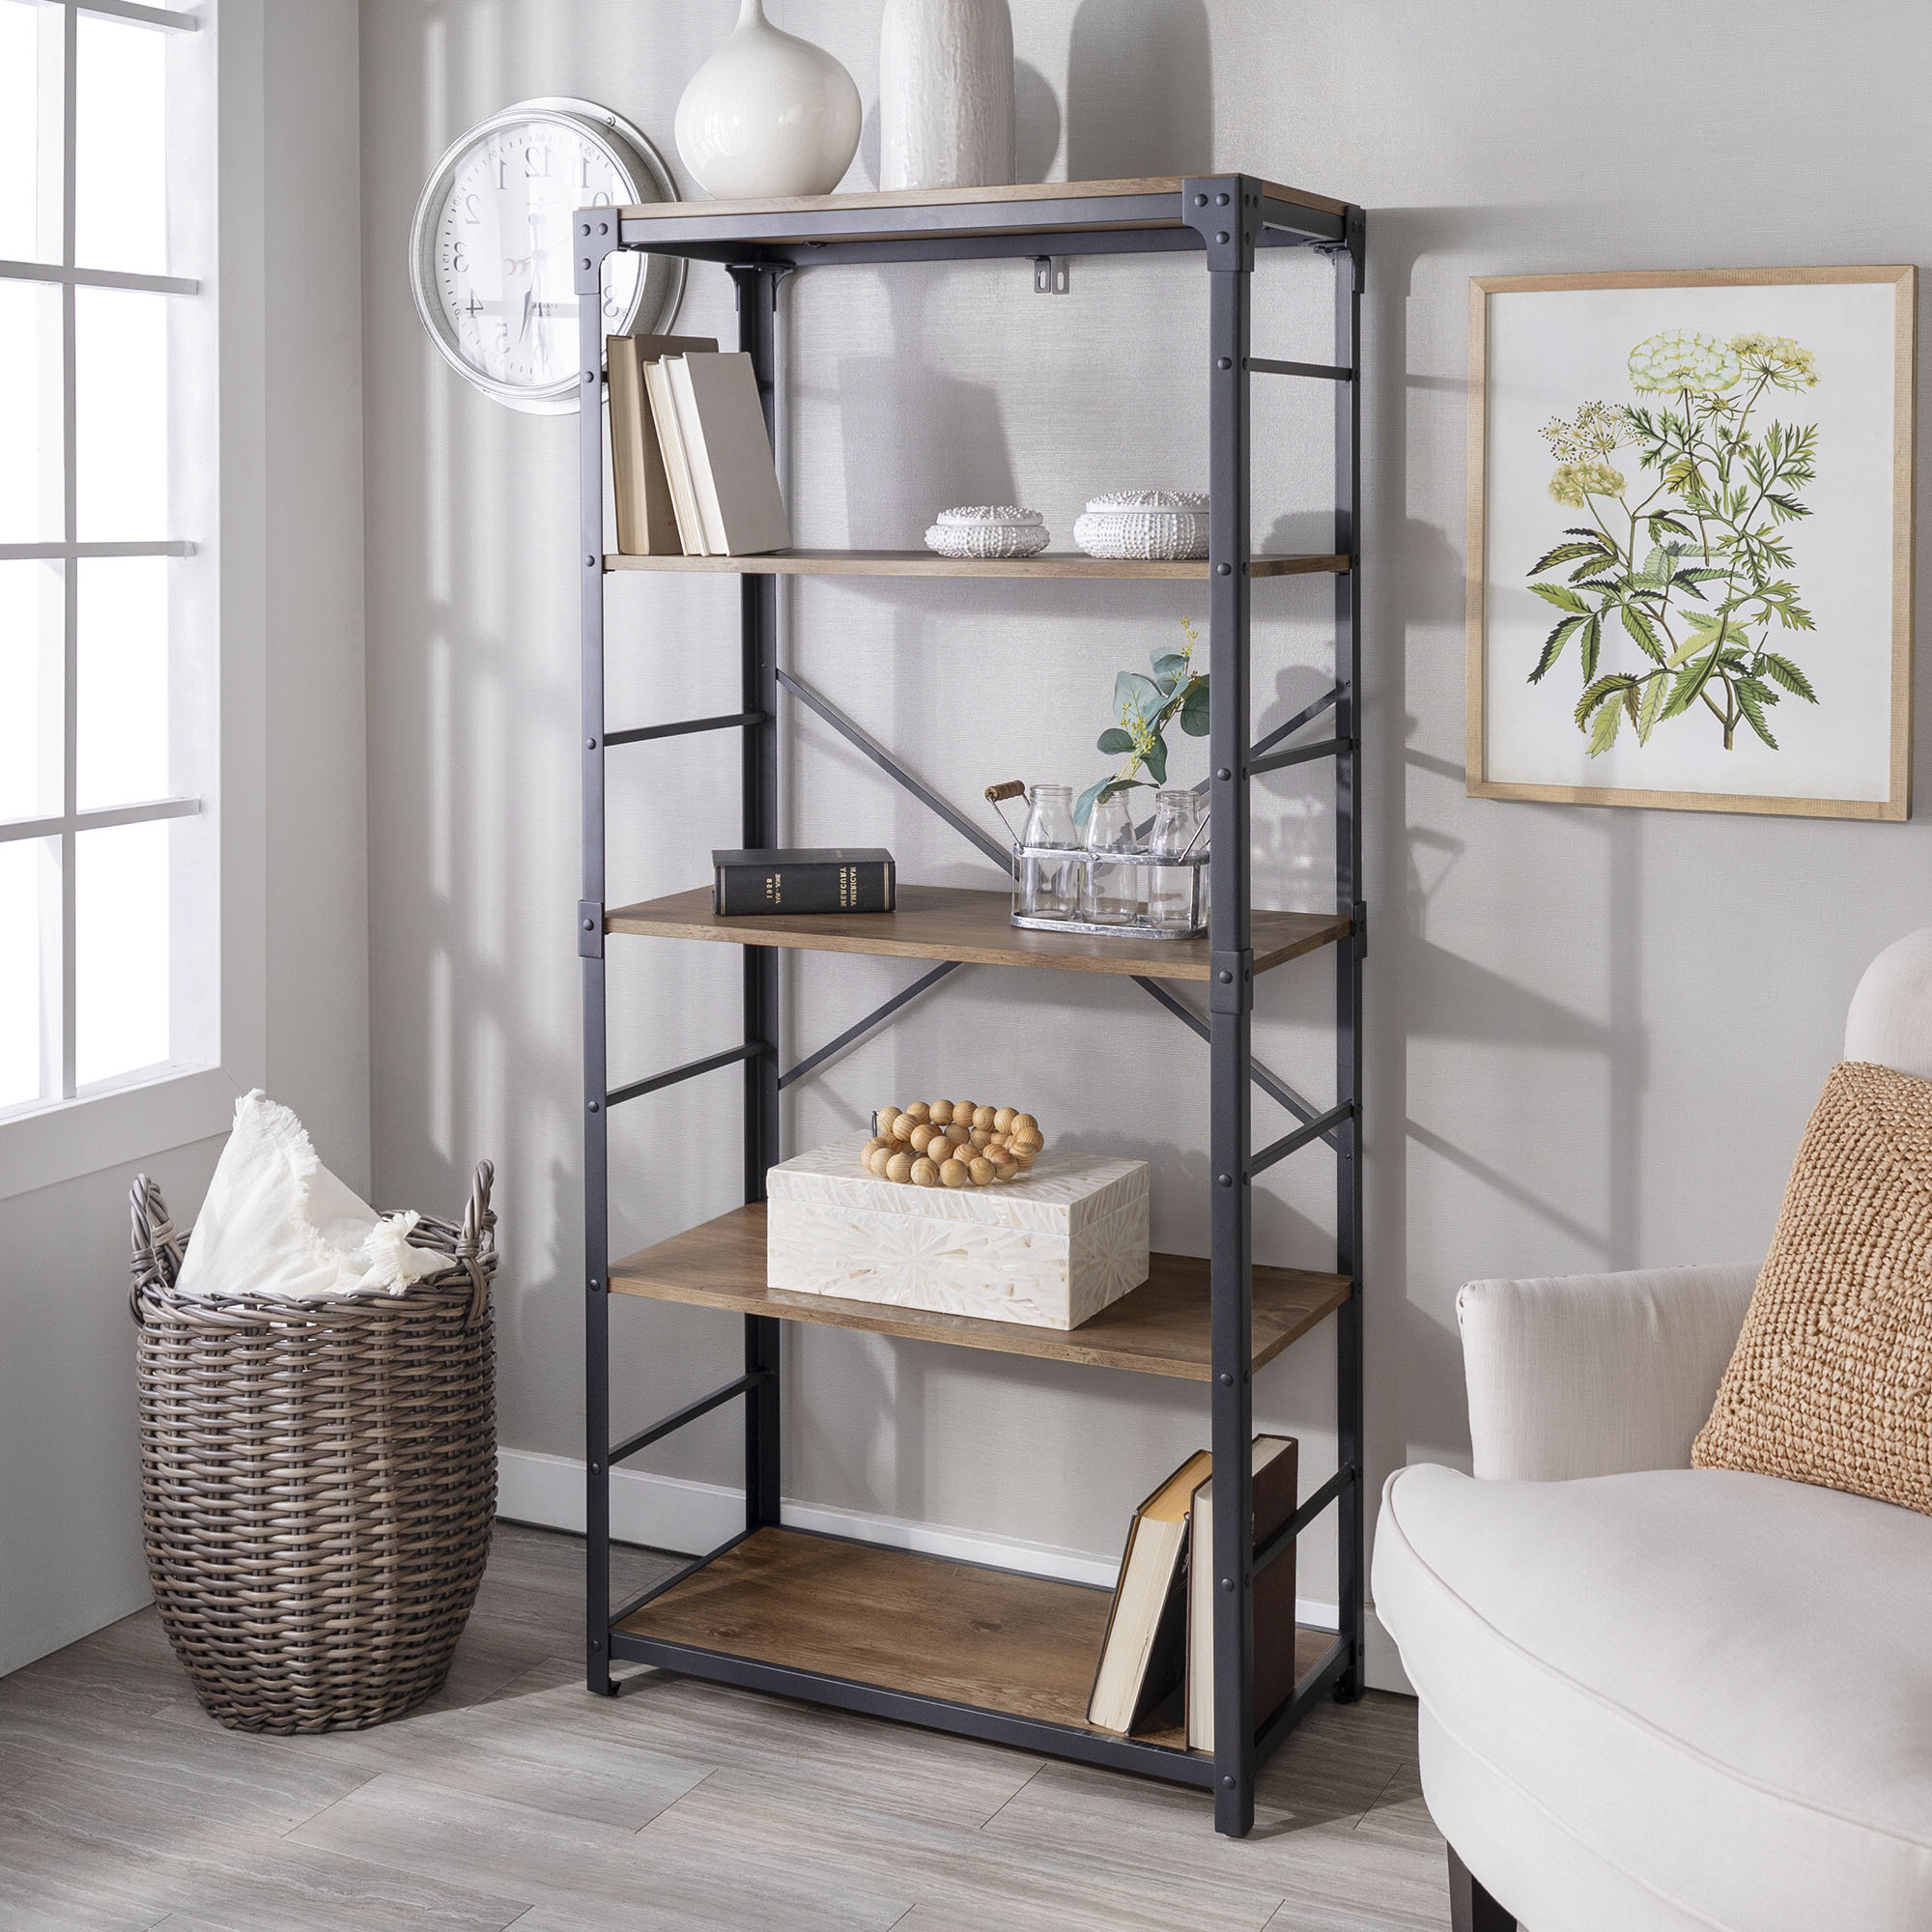 Fashionable Parthenia Etagere Bookcases Intended For Cecelia Etagere Bookcase & Reviews (View 1 of 20)